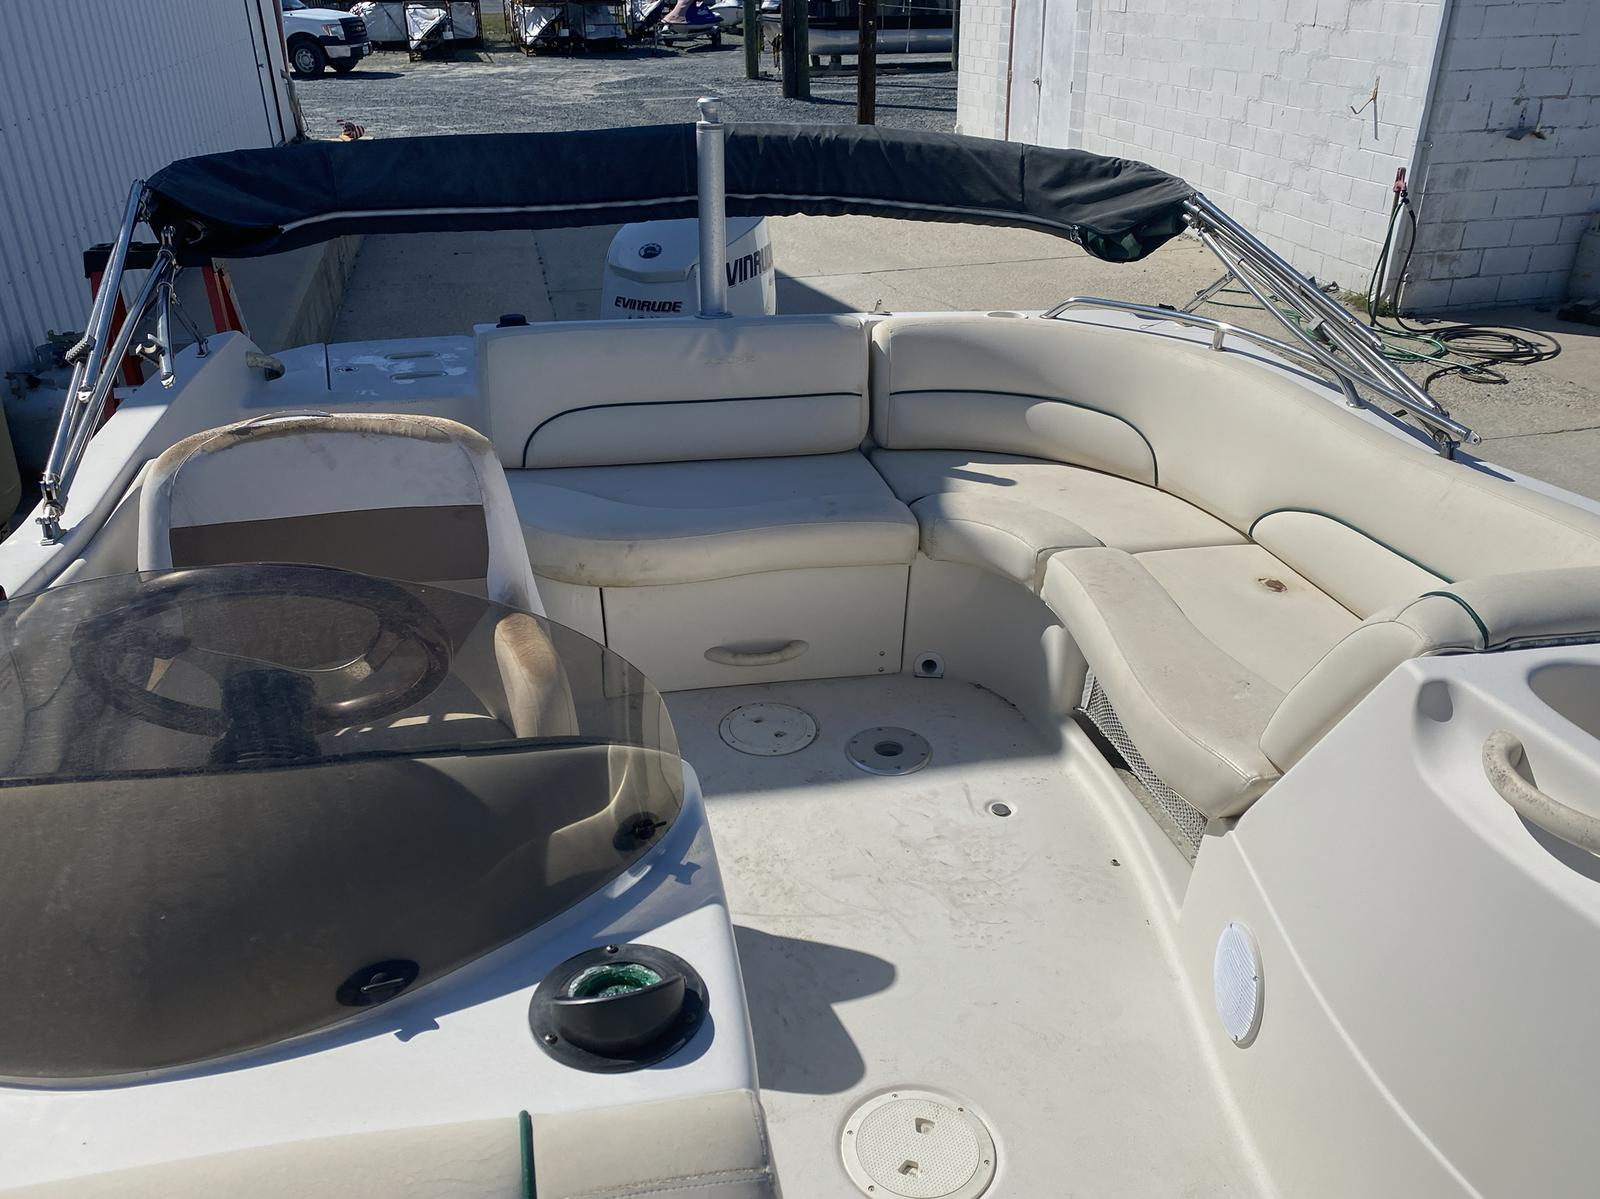 2005 Azure boat for sale, model of the boat is AZ210 & Image # 6 of 13